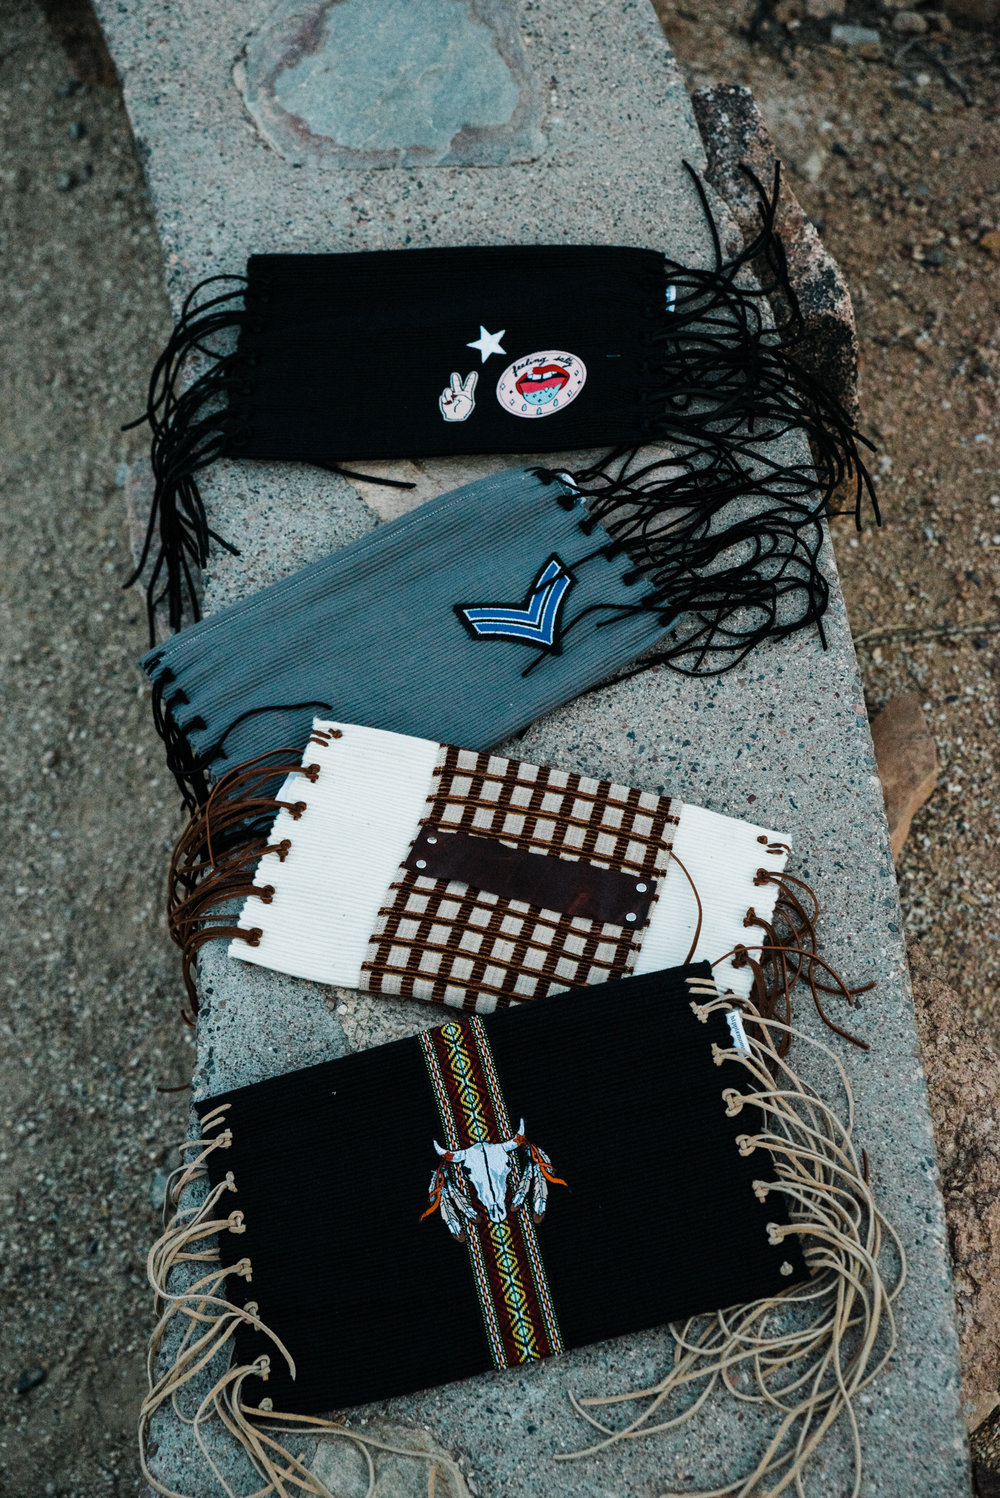 Four gorgeous fringe bags from Hippie Momma Bags laying in the Arizona desert